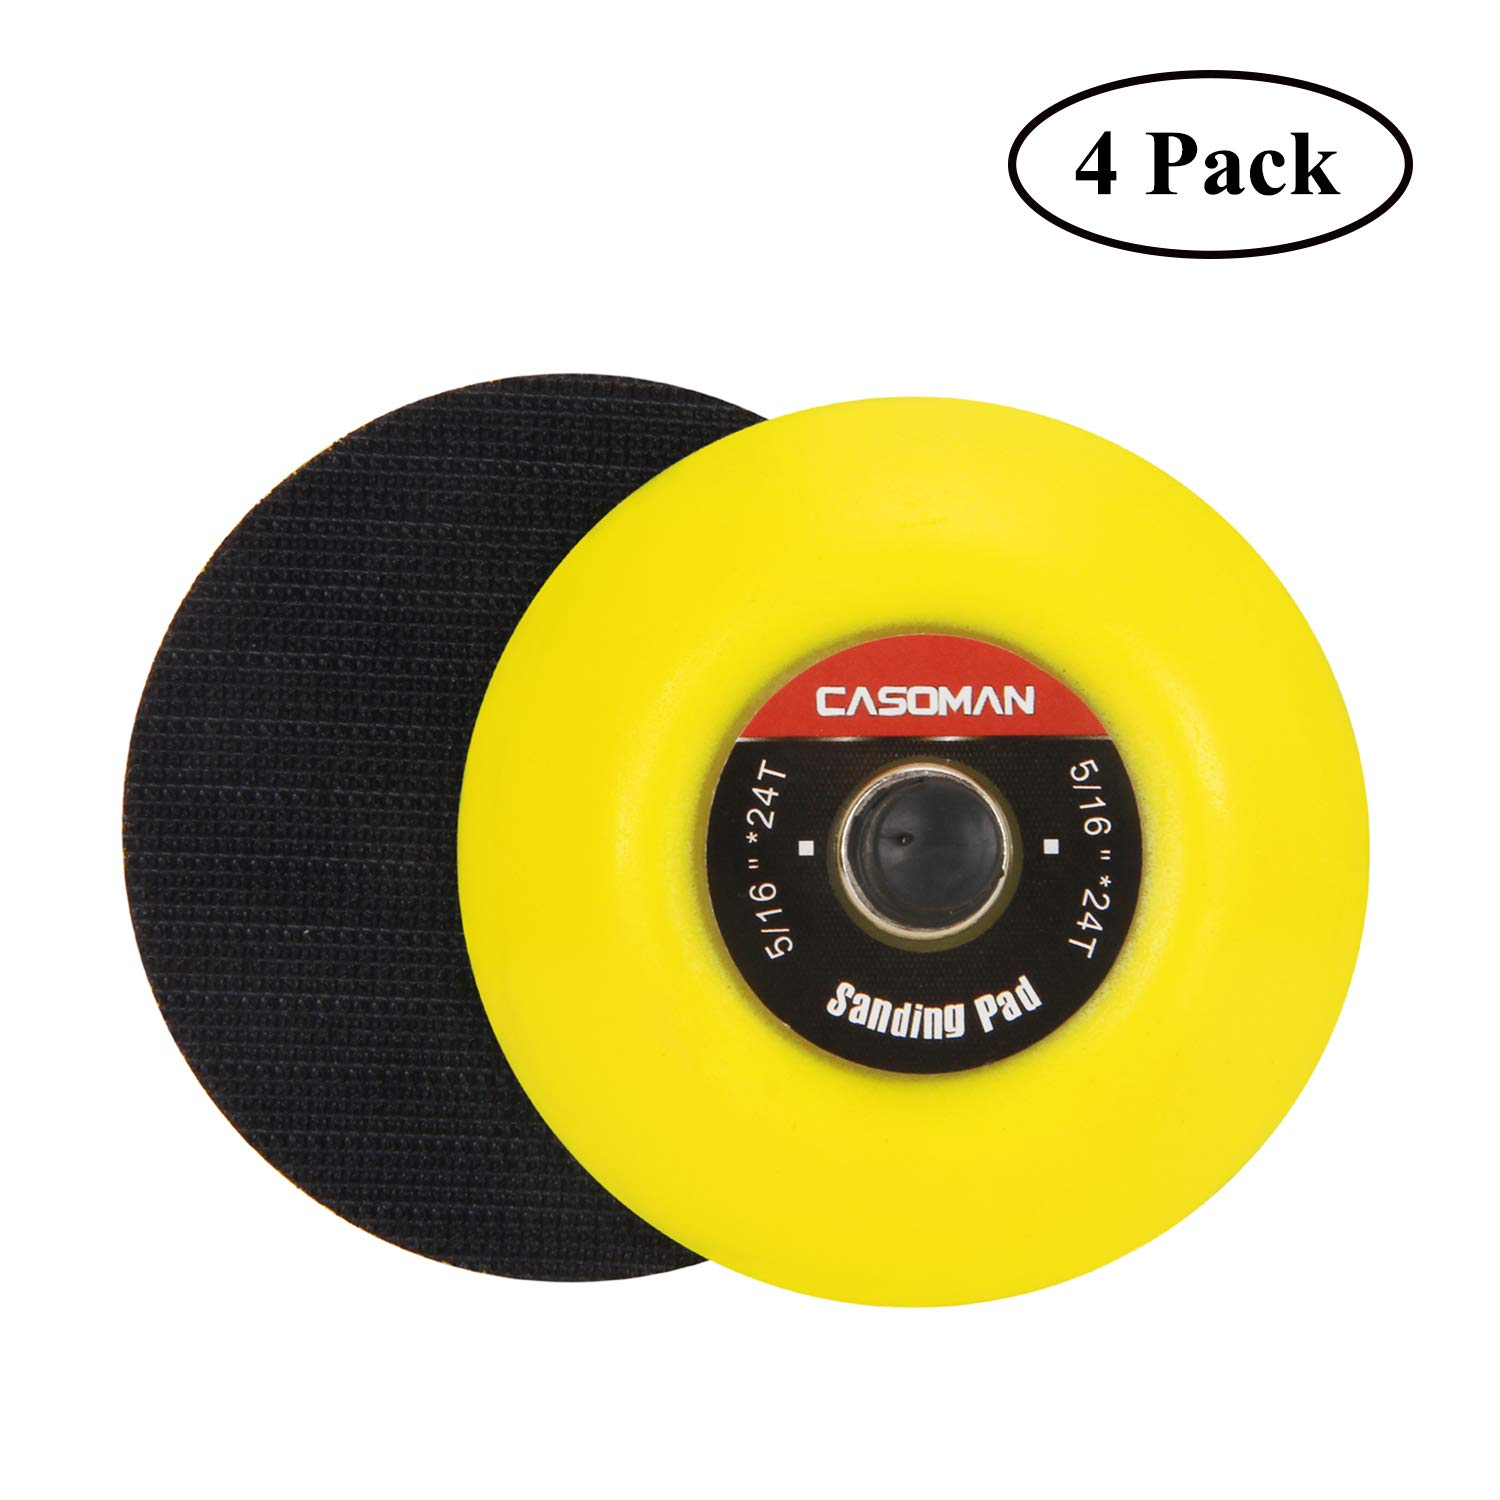 4 PCS Set CASOMAN 3-Inch Dual-Action Hook /& Loop Fastener Flexible Backing Plate 3// 75mm Polishing Pad with 5//16-24 Threads